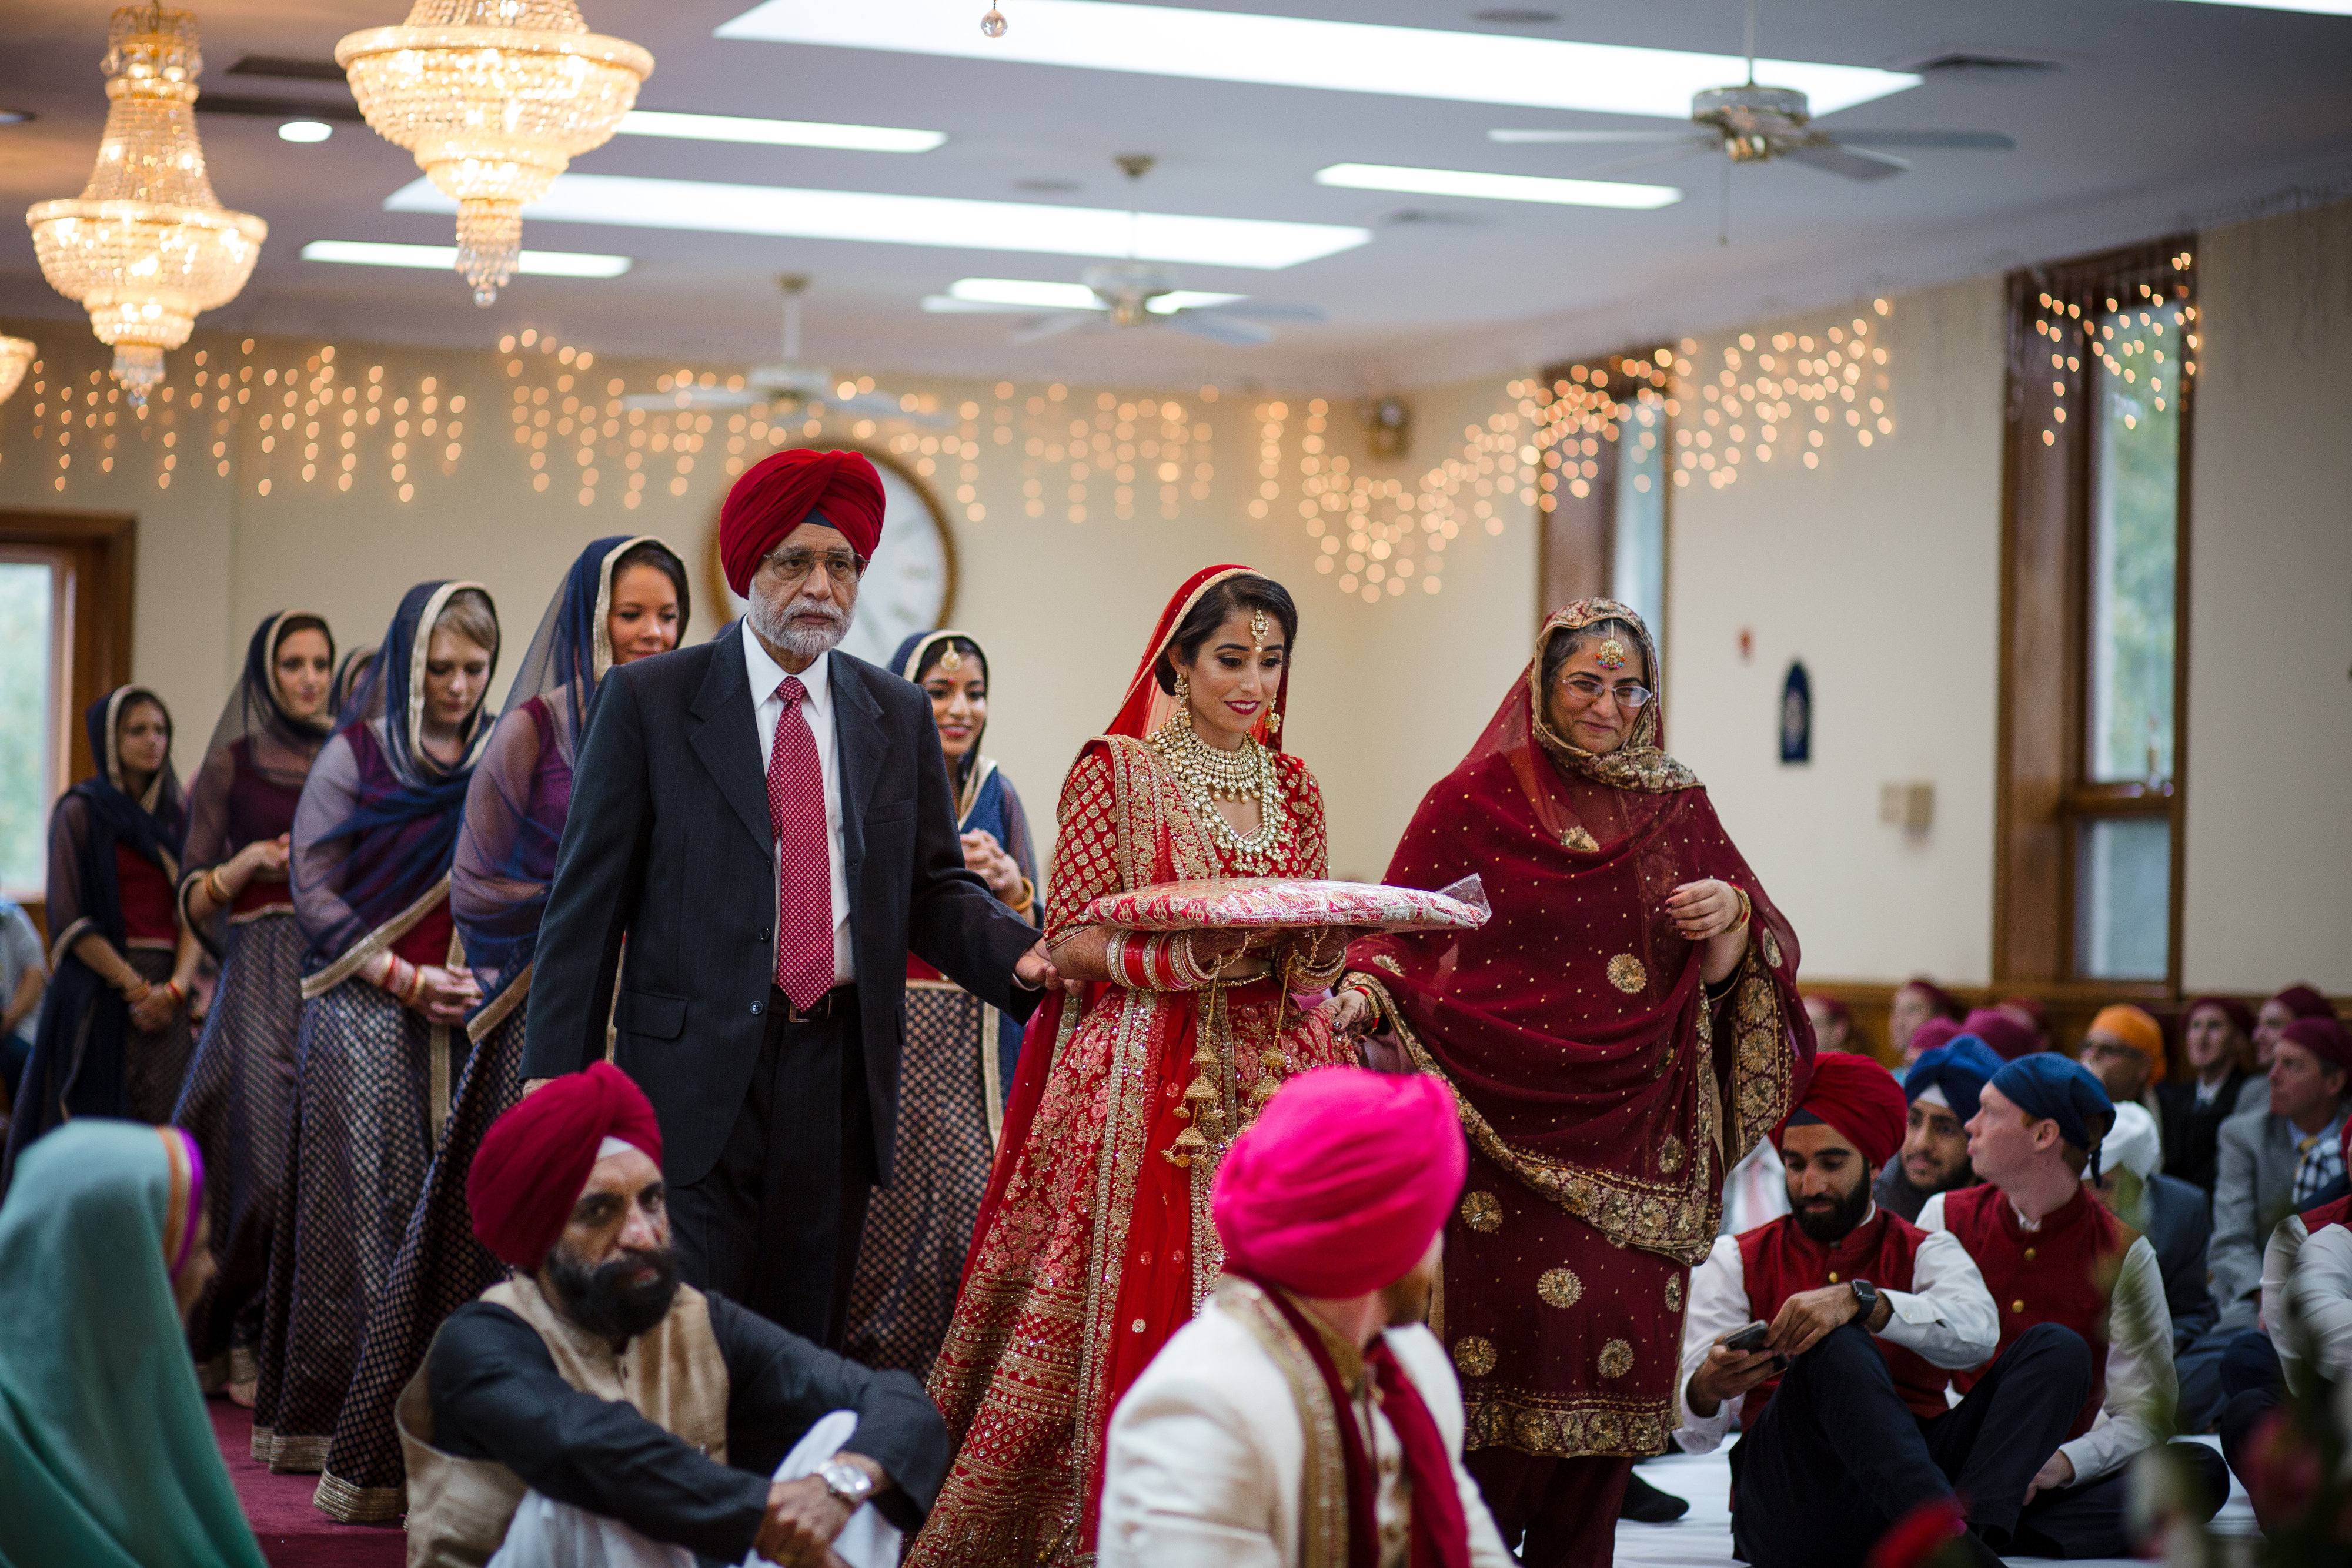 Manmeet says that while wedding planning can be exhausting, she and Bryan were thrilled to have everyone they loved in one place for several days. (Image: Laura Bryan Photography){ }